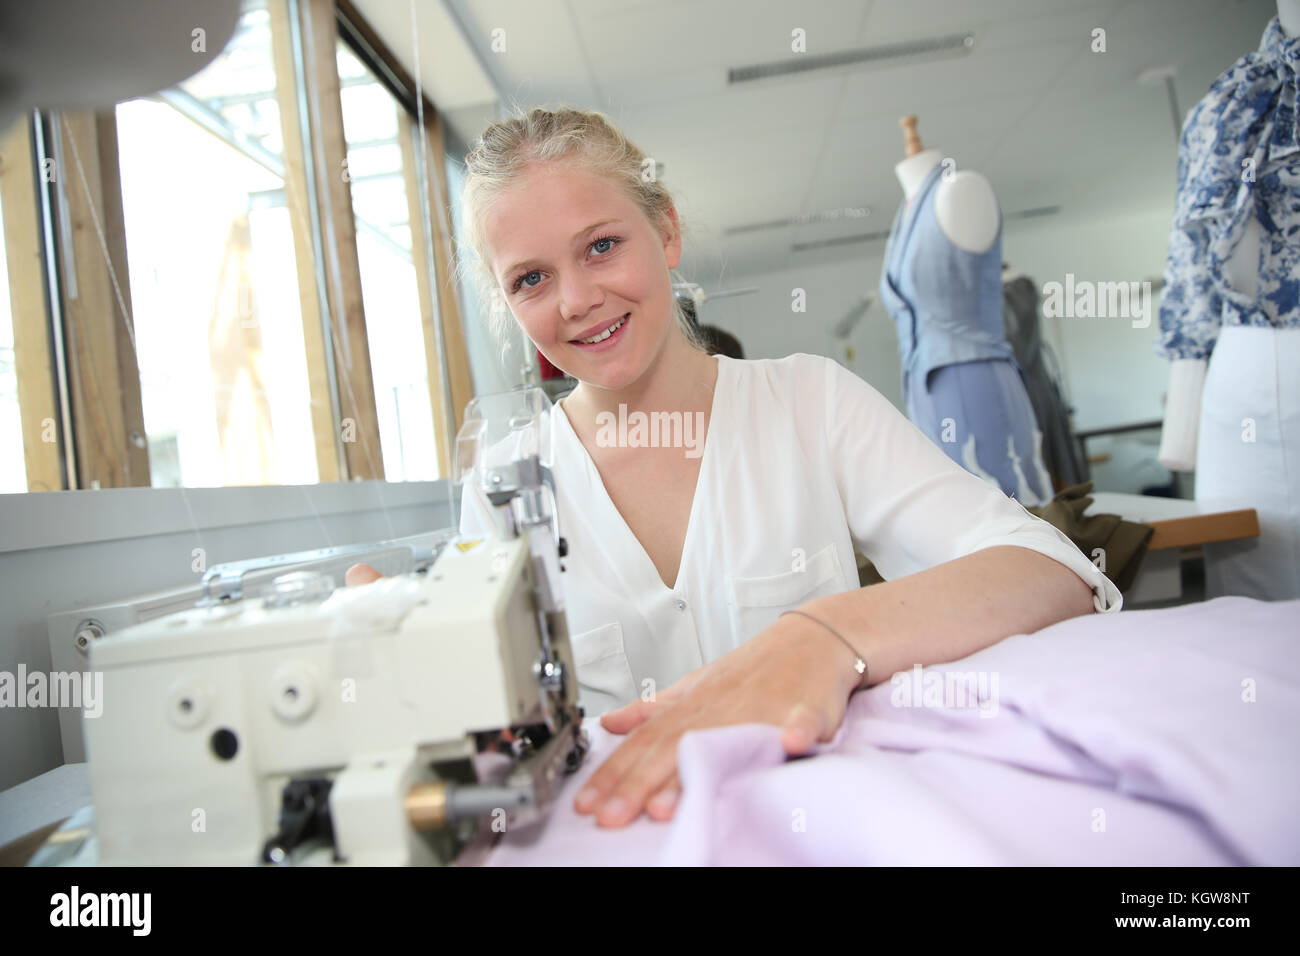 Young girl in sewing training course - Stock Image